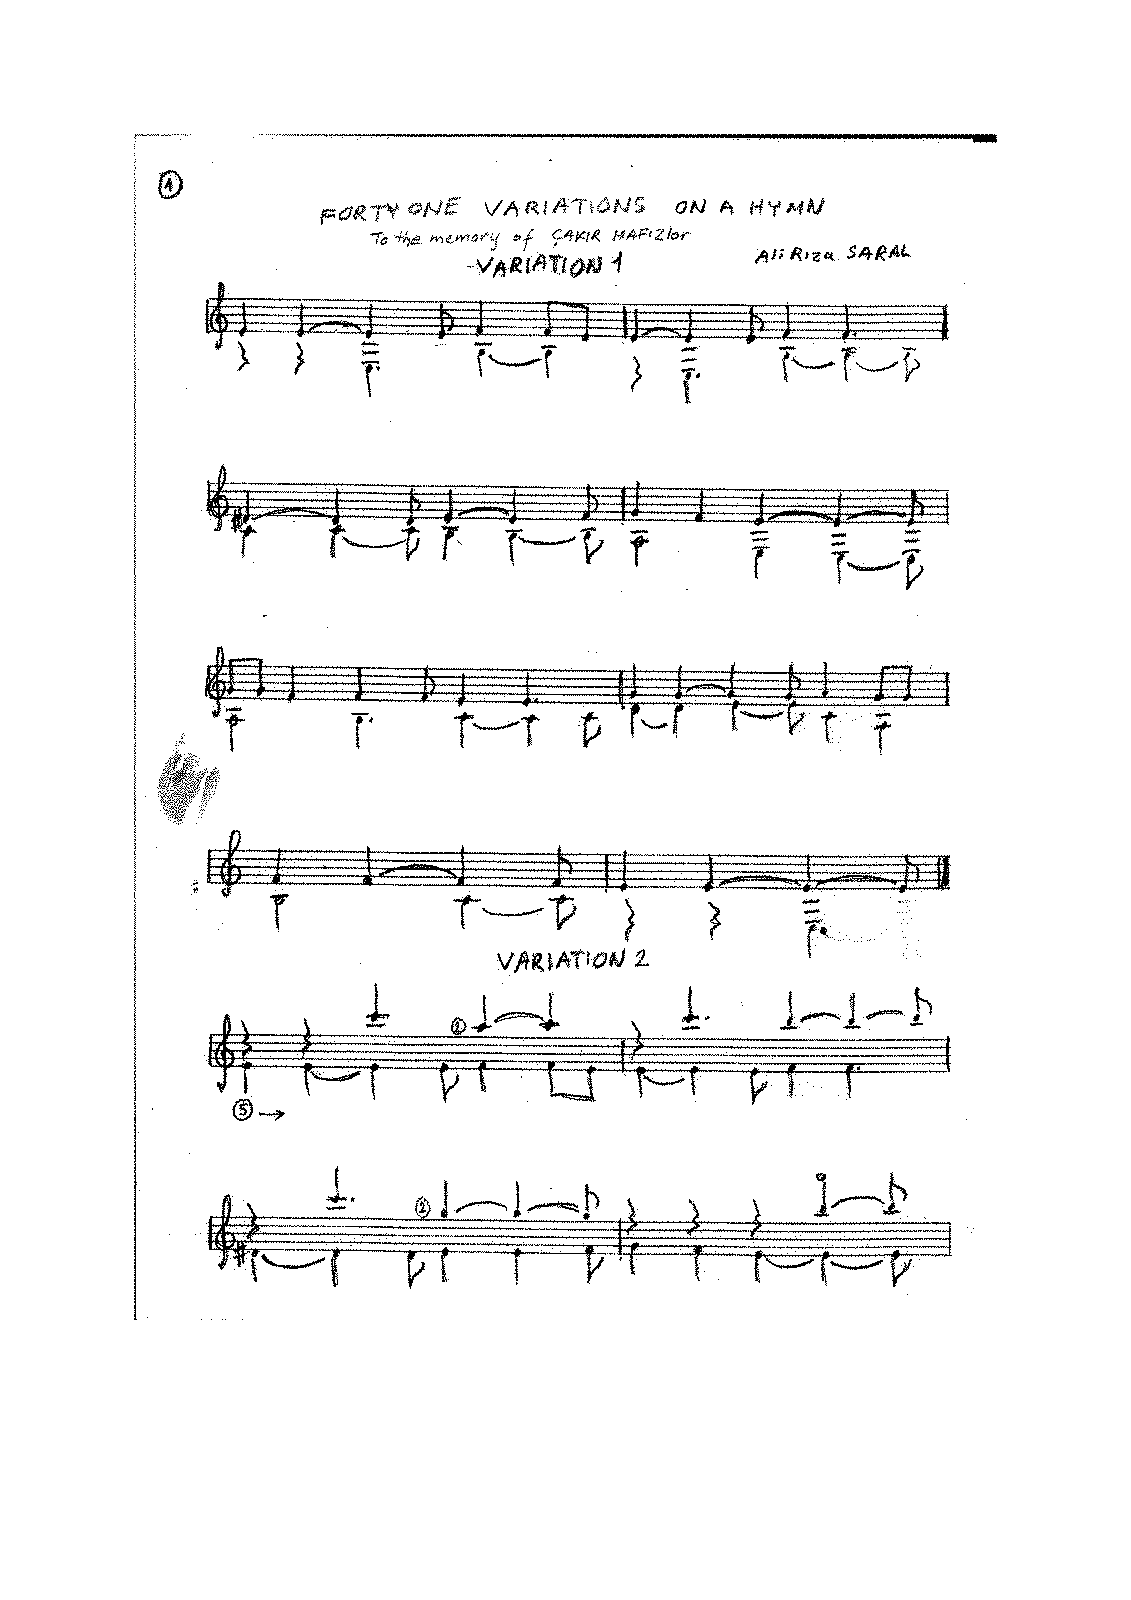 PMLP577286-Fortyone Variations on a Hymn.pdf